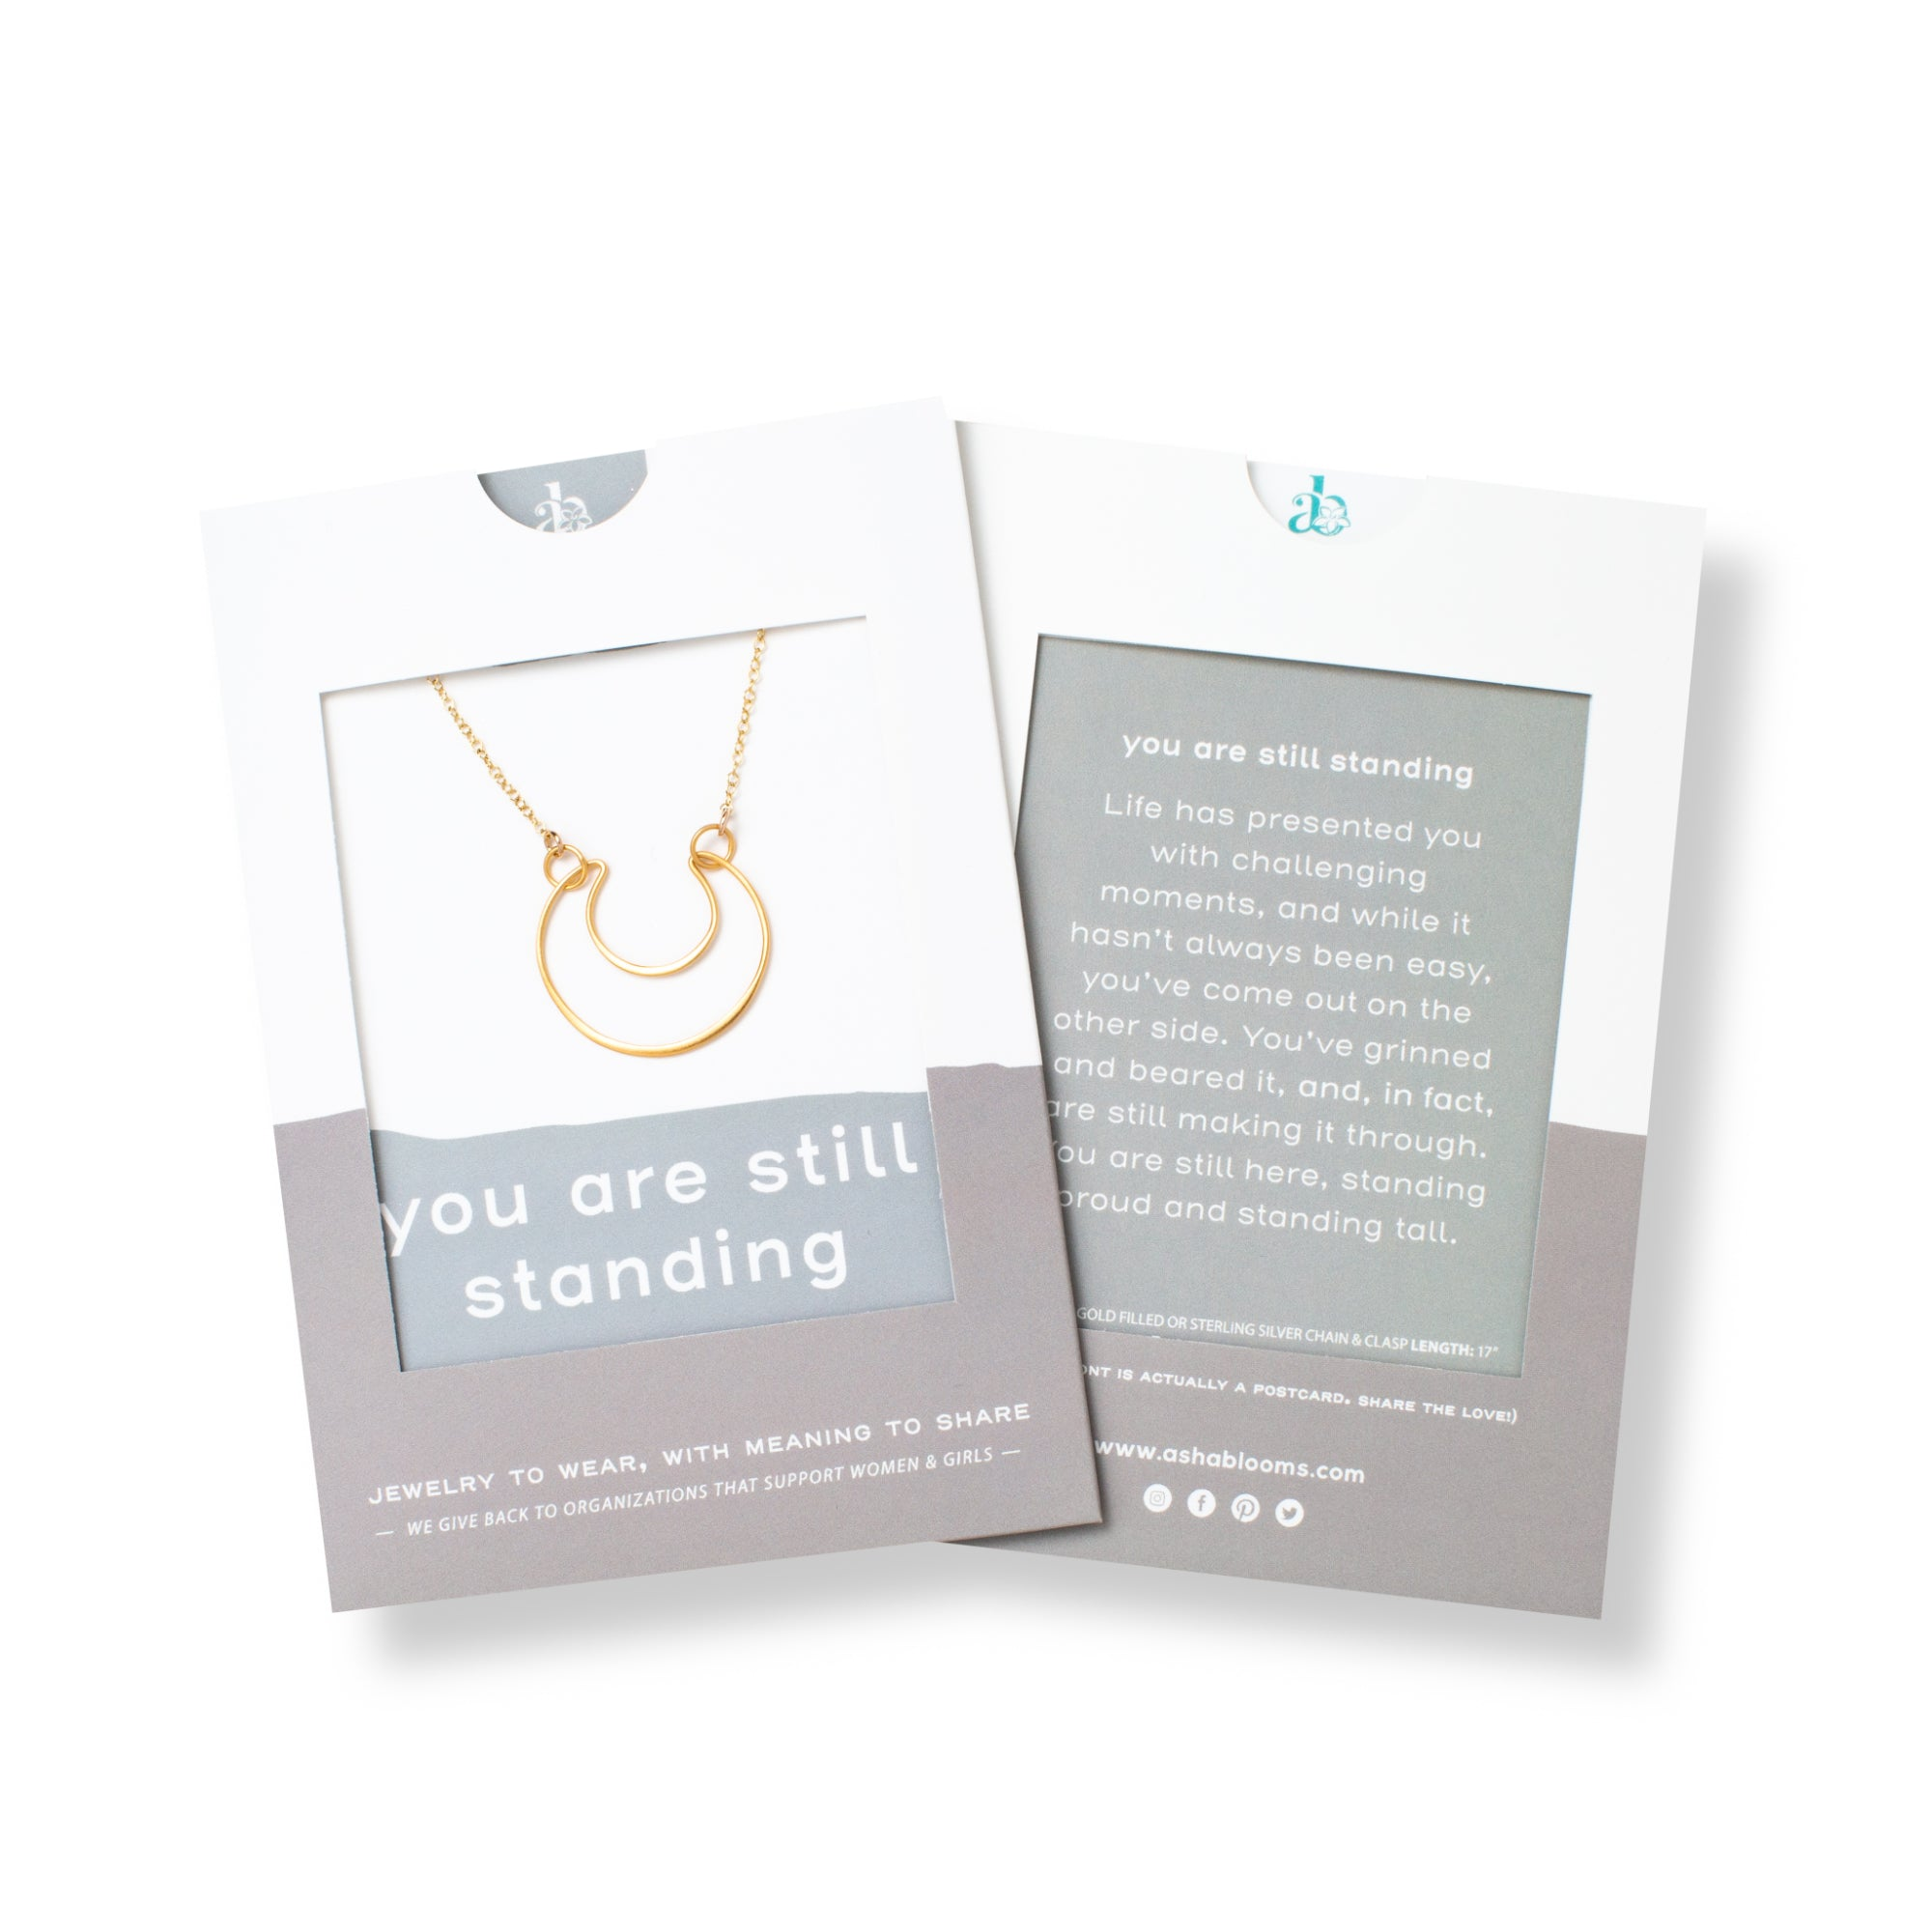 Gold Crescent Moon Pendant Necklace 'You Are Still Standing' in Gray Gift Message Sleeve Packaging Photo by Asha Blooms